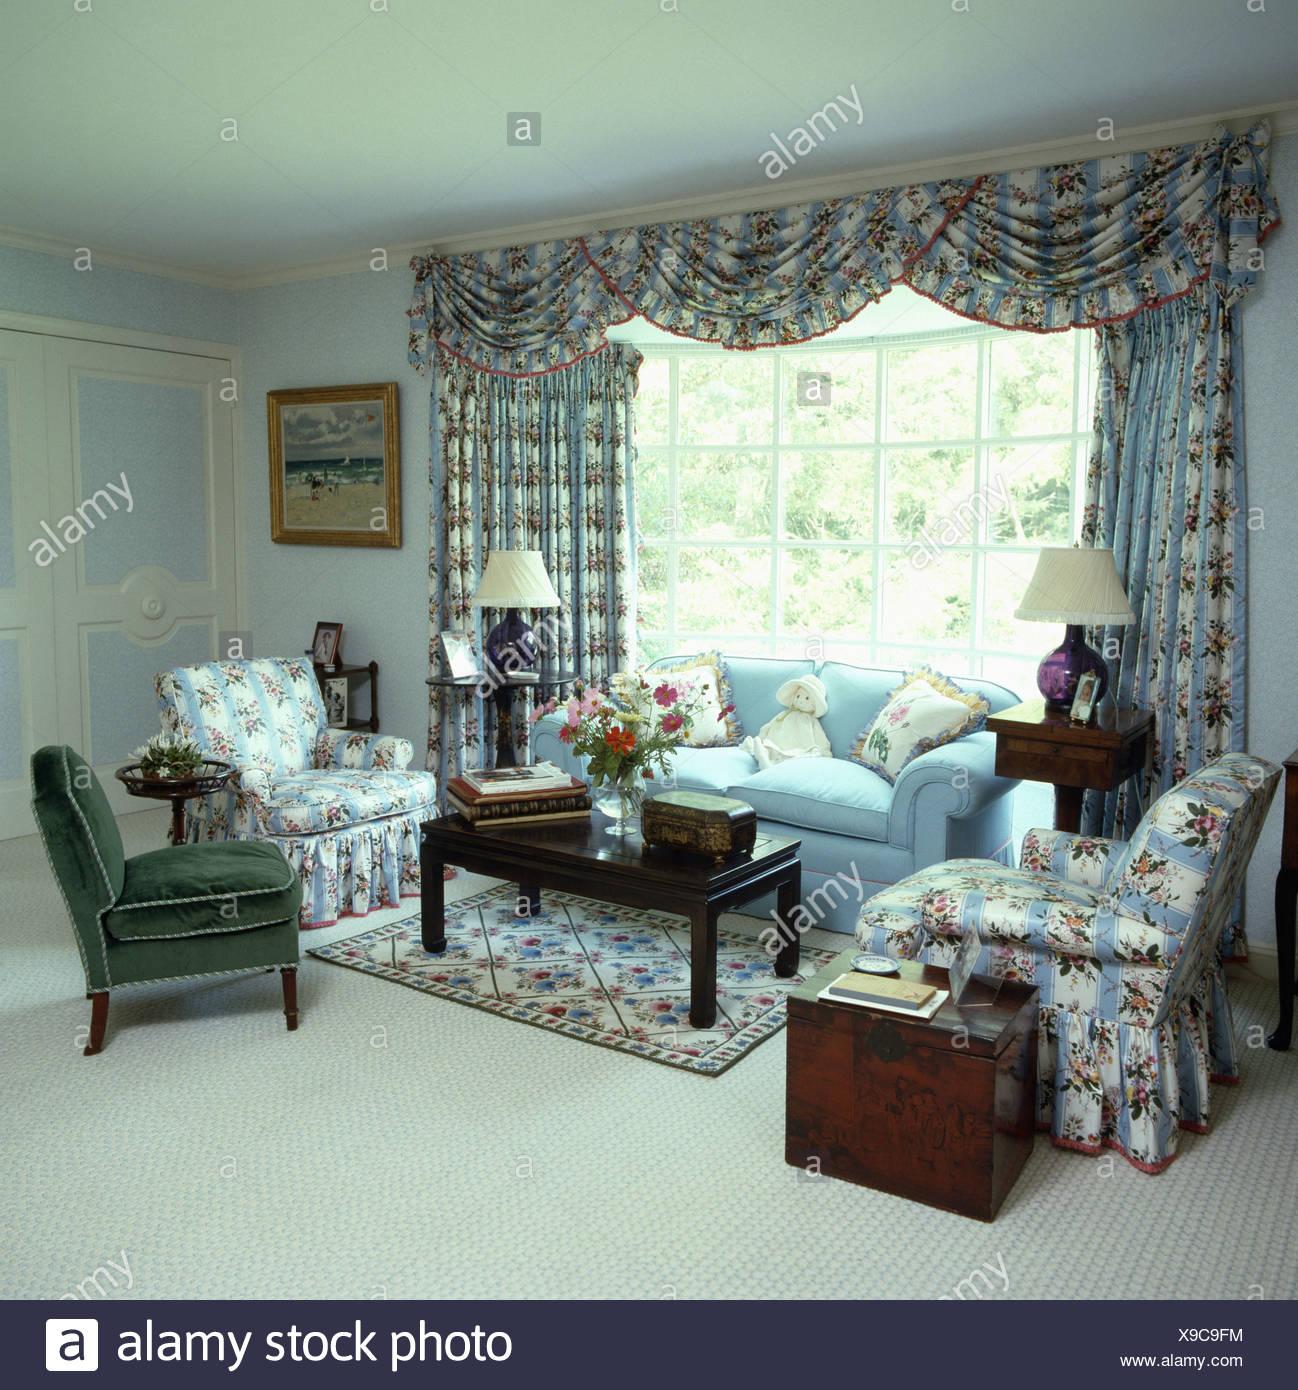 Blue Pink And White Floral Patterned Drapes And Armchairs In Pale Blue Living Room With White Carpet And Antique Chest Stock Photo Alamy